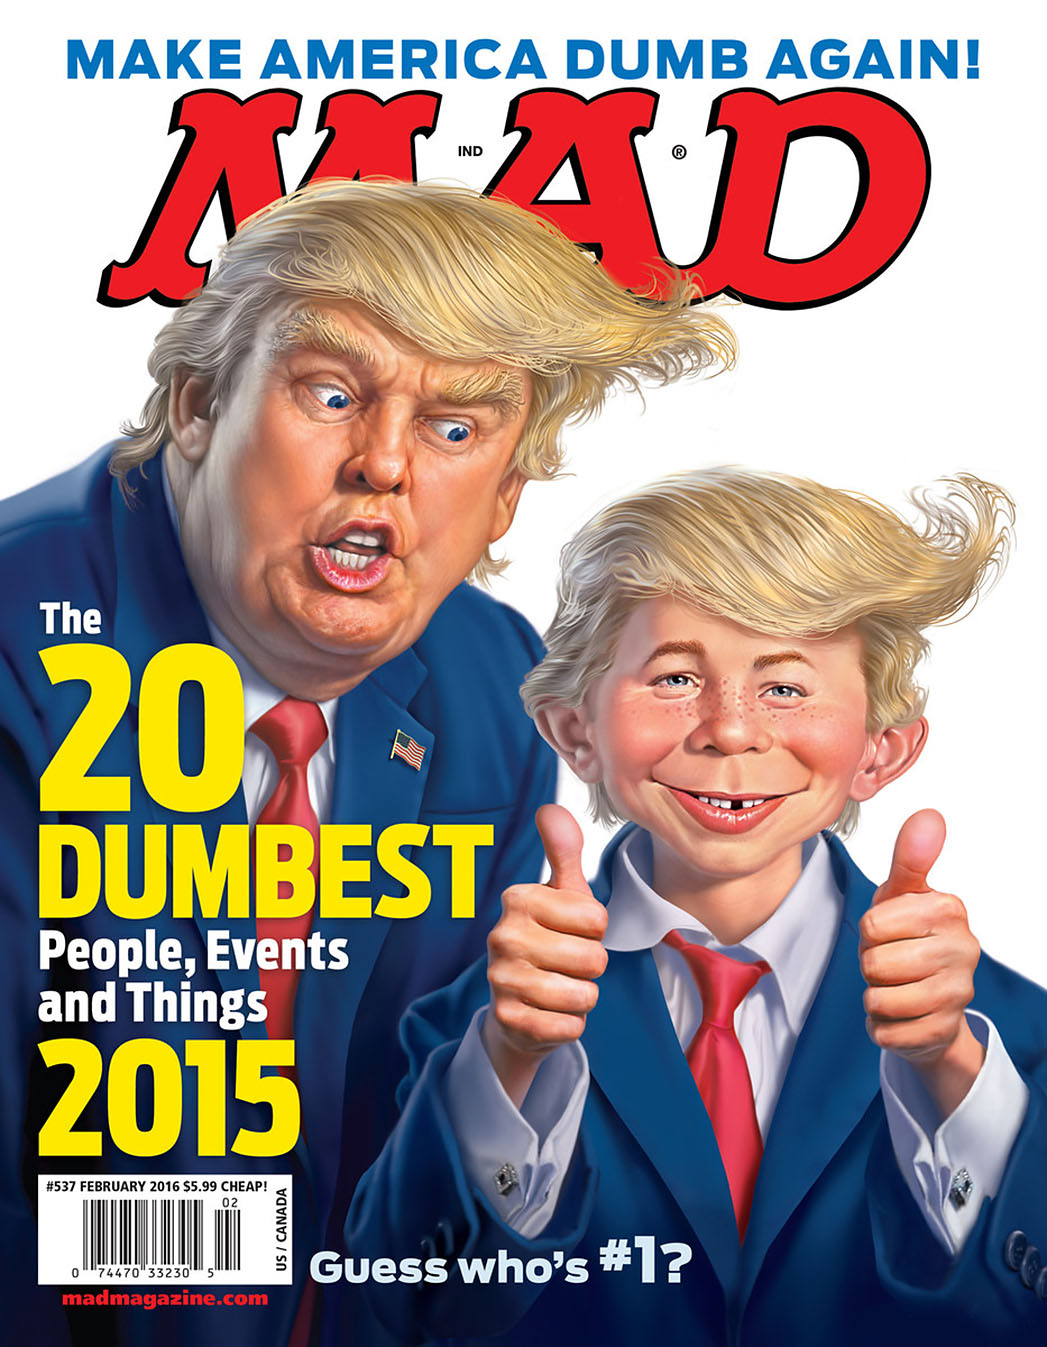 MAD Magazine to Effectively Shutter After 67 Years MAD Magazine to Effectively Shutter After 67 Years